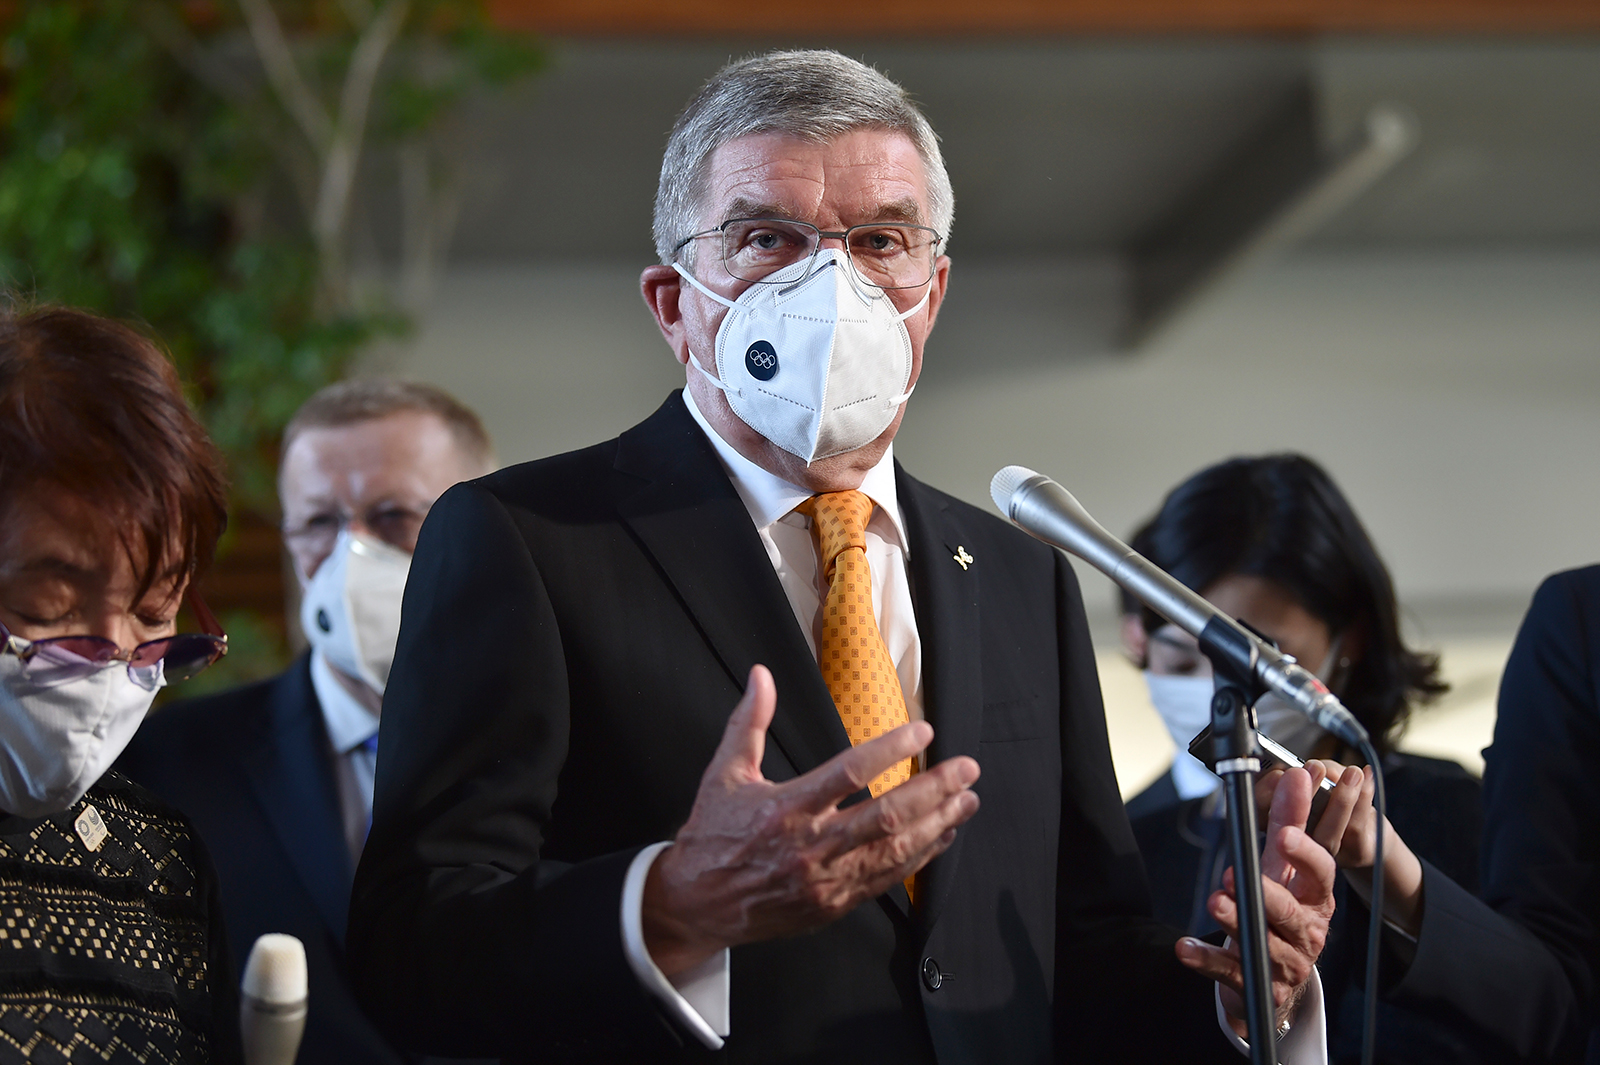 International Olympic Committee (IOC) President Thomas Bach speaks to the media after his meeting with Japan's prime minister in Tokyo, on November 16.